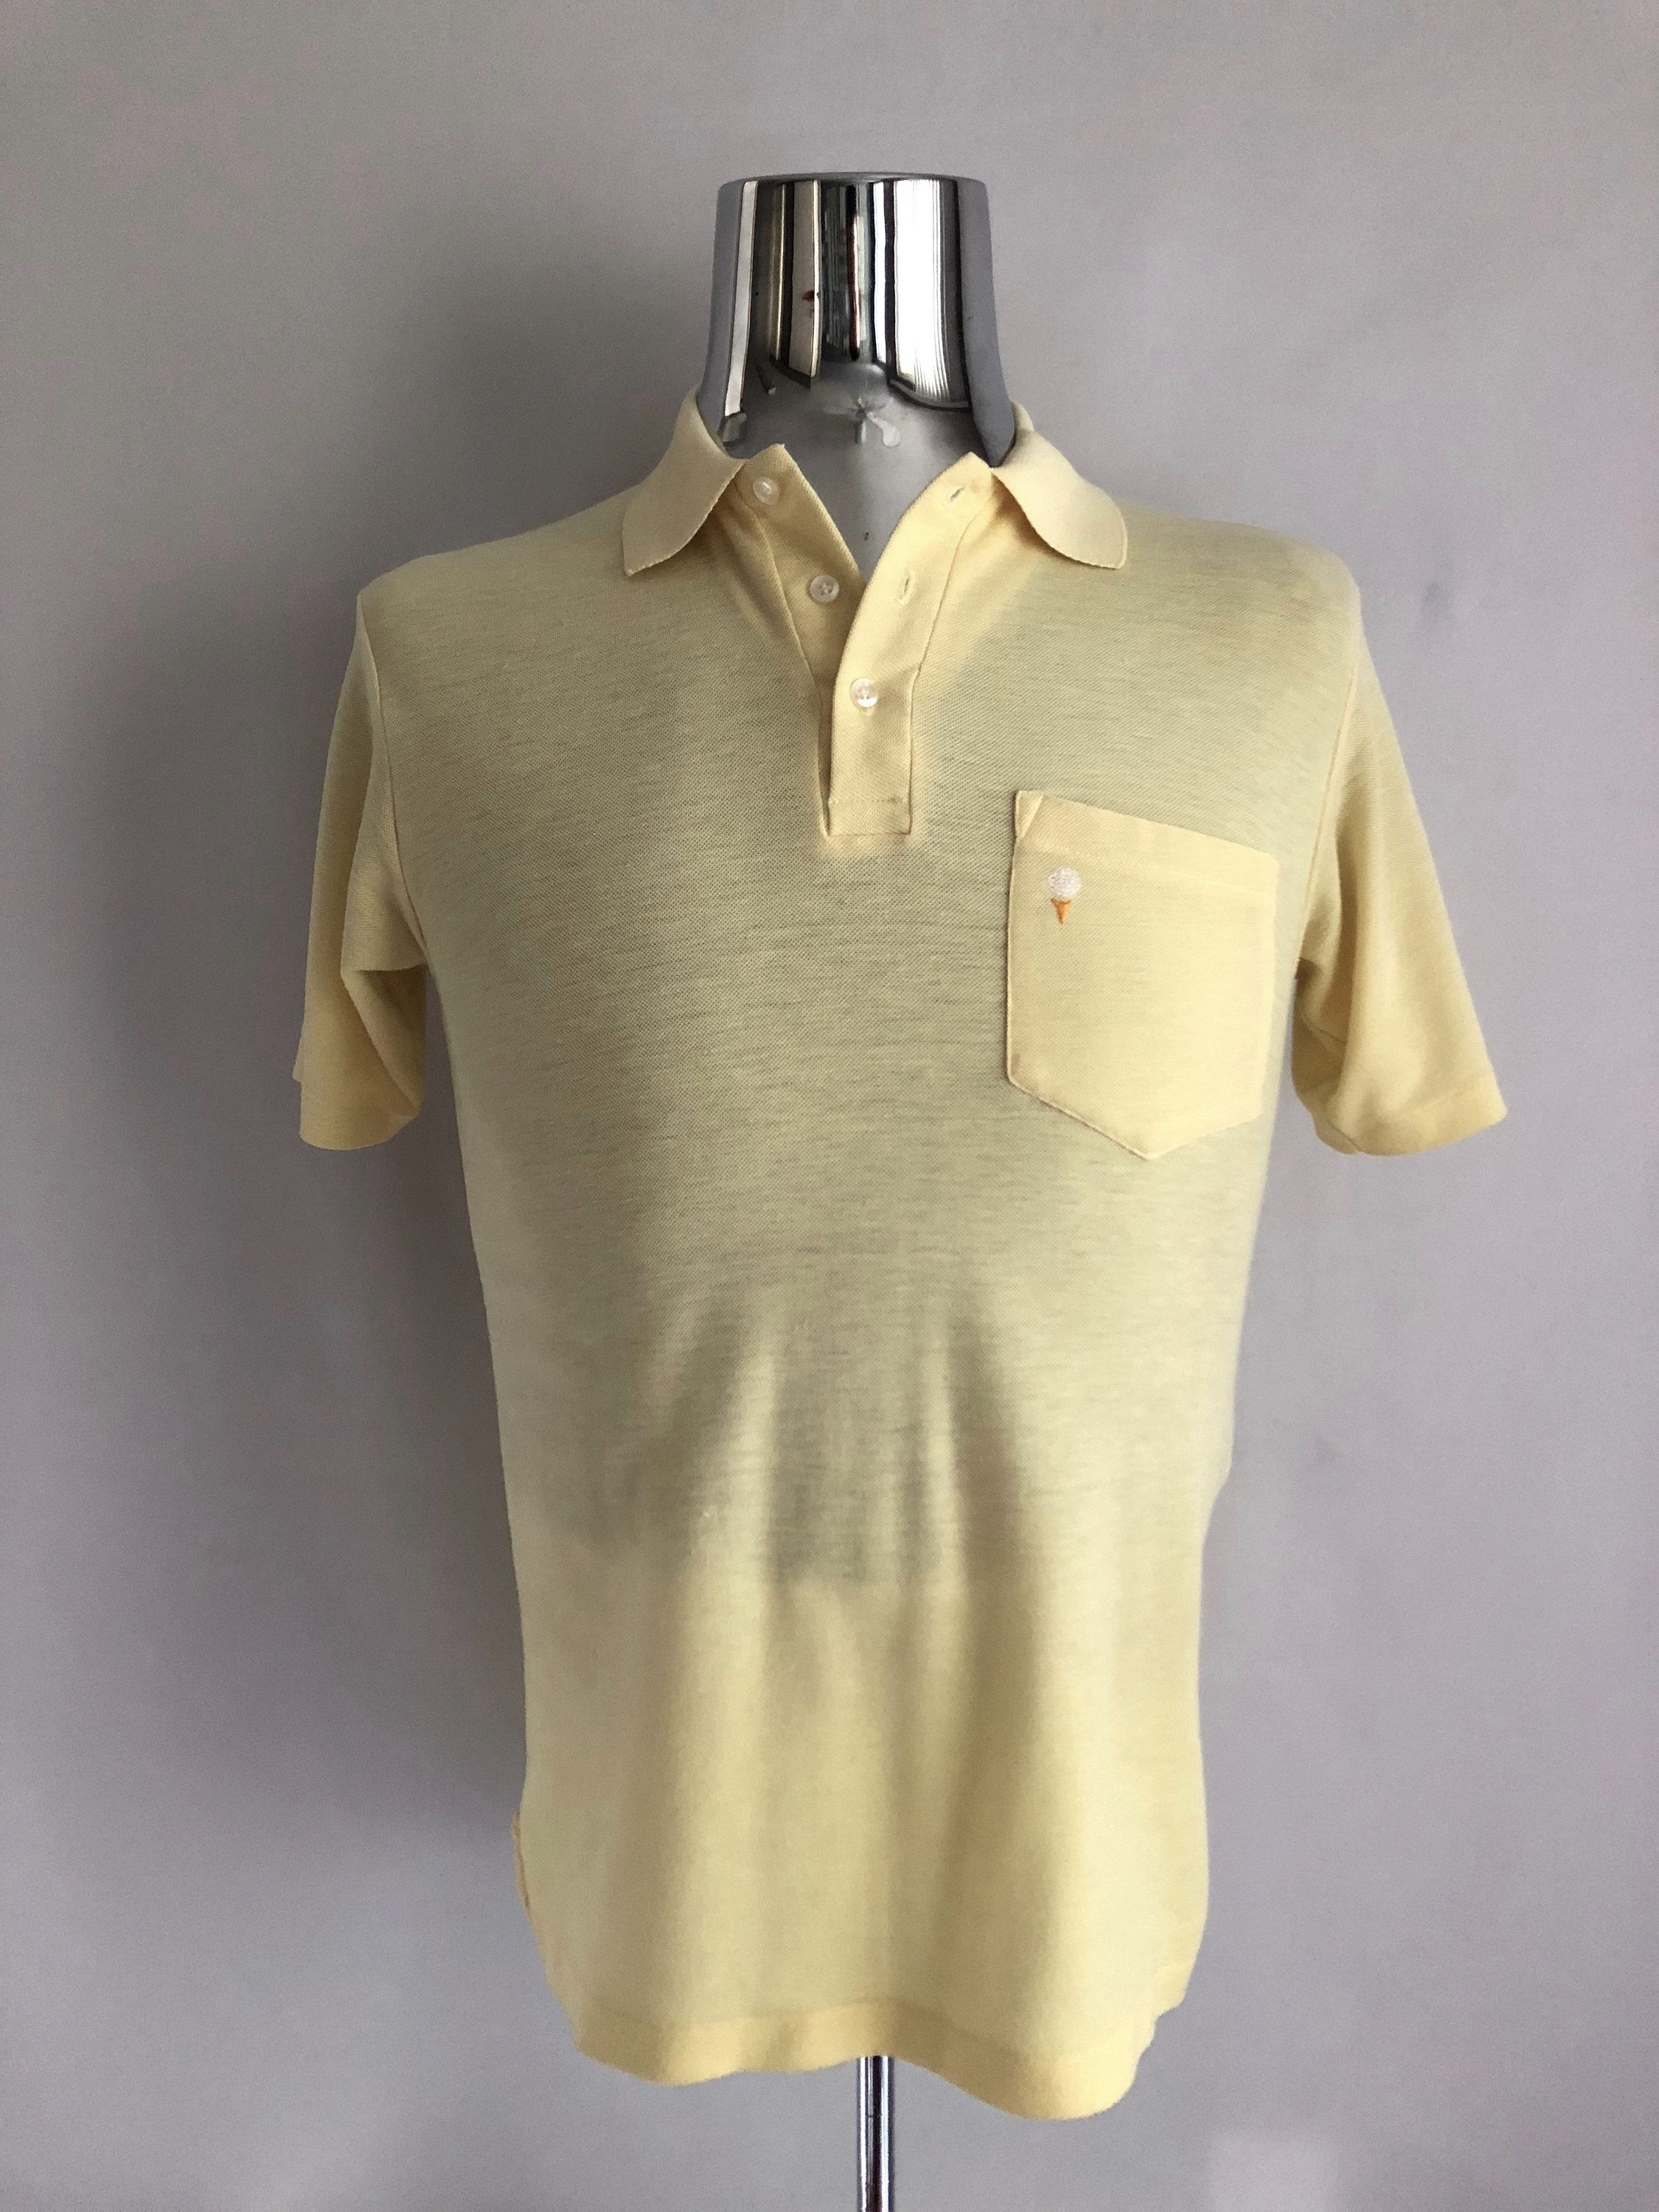 80c5060e5 Vintage Men's 80's Pale Yellow, Polo Shirt, Short Sleeve by Go Pro Manhattan  (S) by Freshandswanky on Etsy